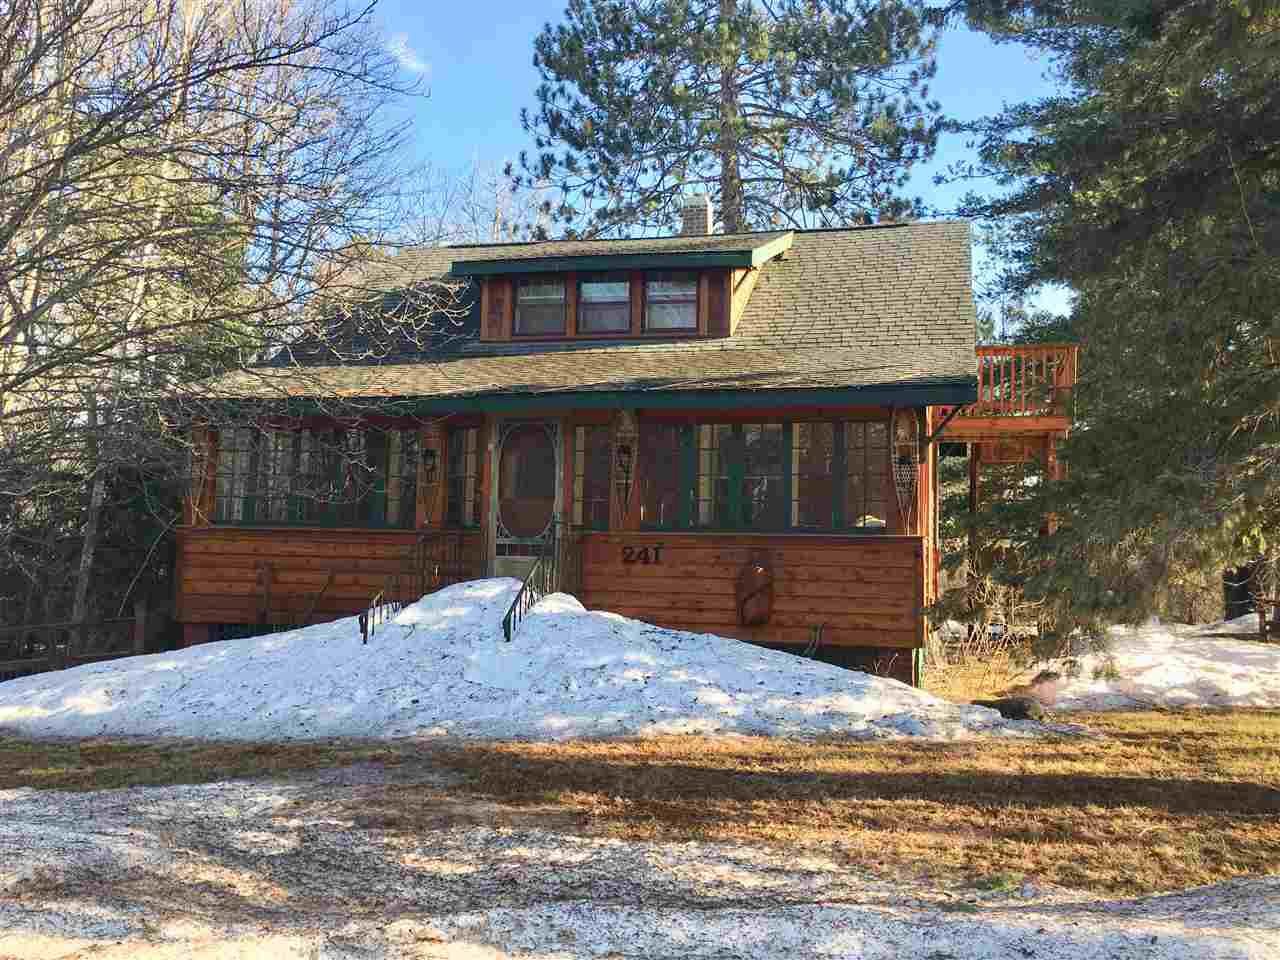 You won't feel like you're in the city when you're gathering in the tree lined, private back yard. This home has direct access to trails for hiking or biking in the summer and snowmobiling in the winter. The main level bedroom is off of the living room. Main bath off is the dining room, which is open to the kitchen. The upper level includes a second bedroom, full bath, large closet and private entry from an exterior stairway. Basement includes laundry, shower and bonus room.